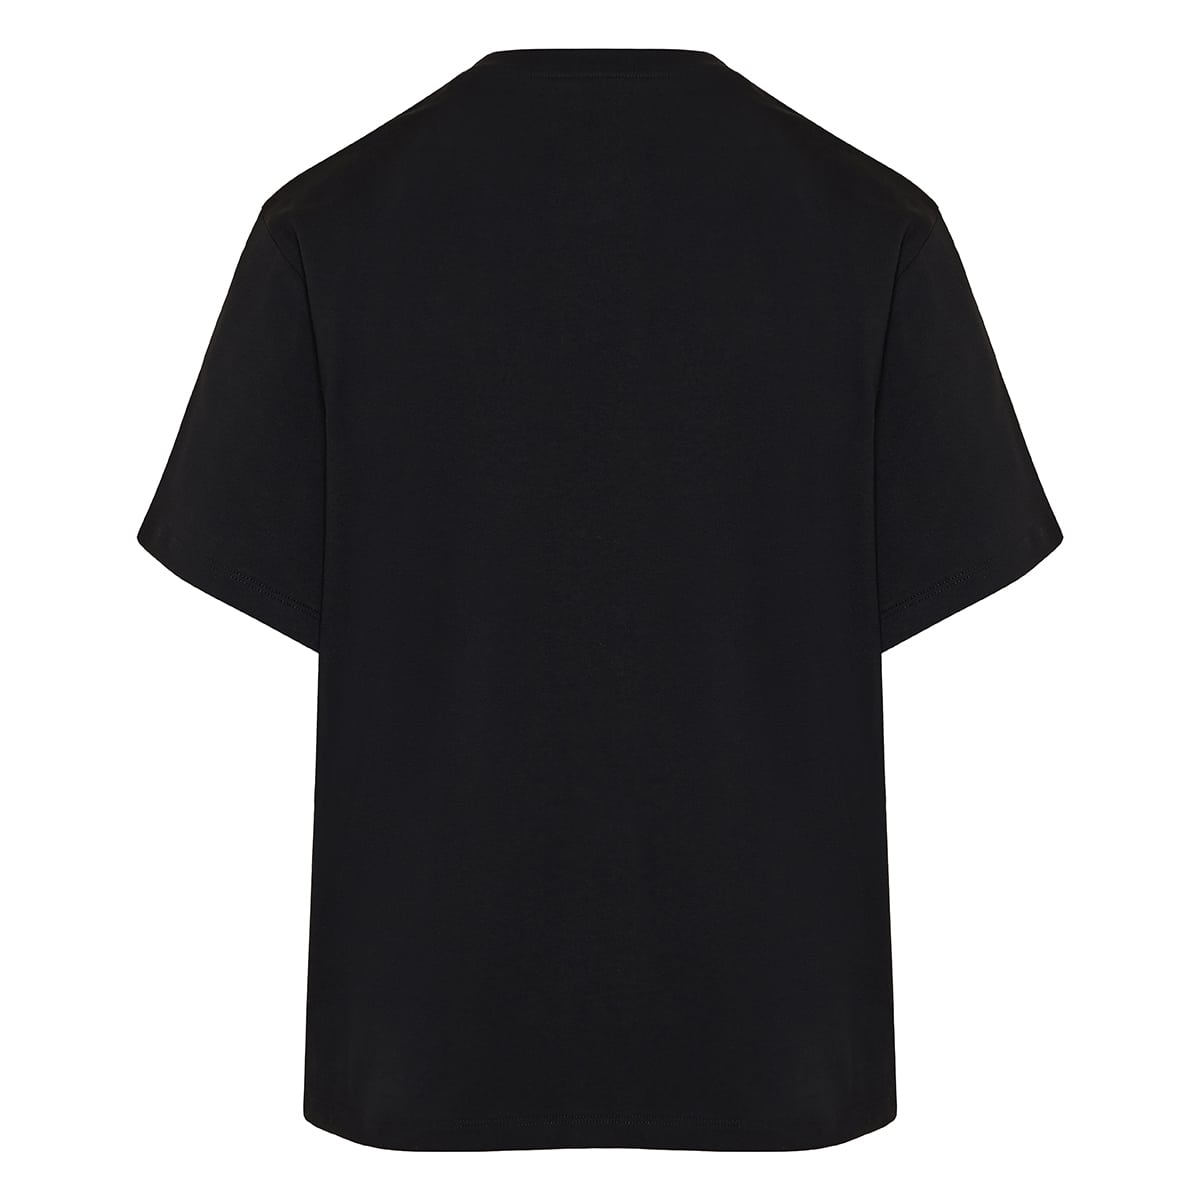 Waste of Space oversized t-shirt